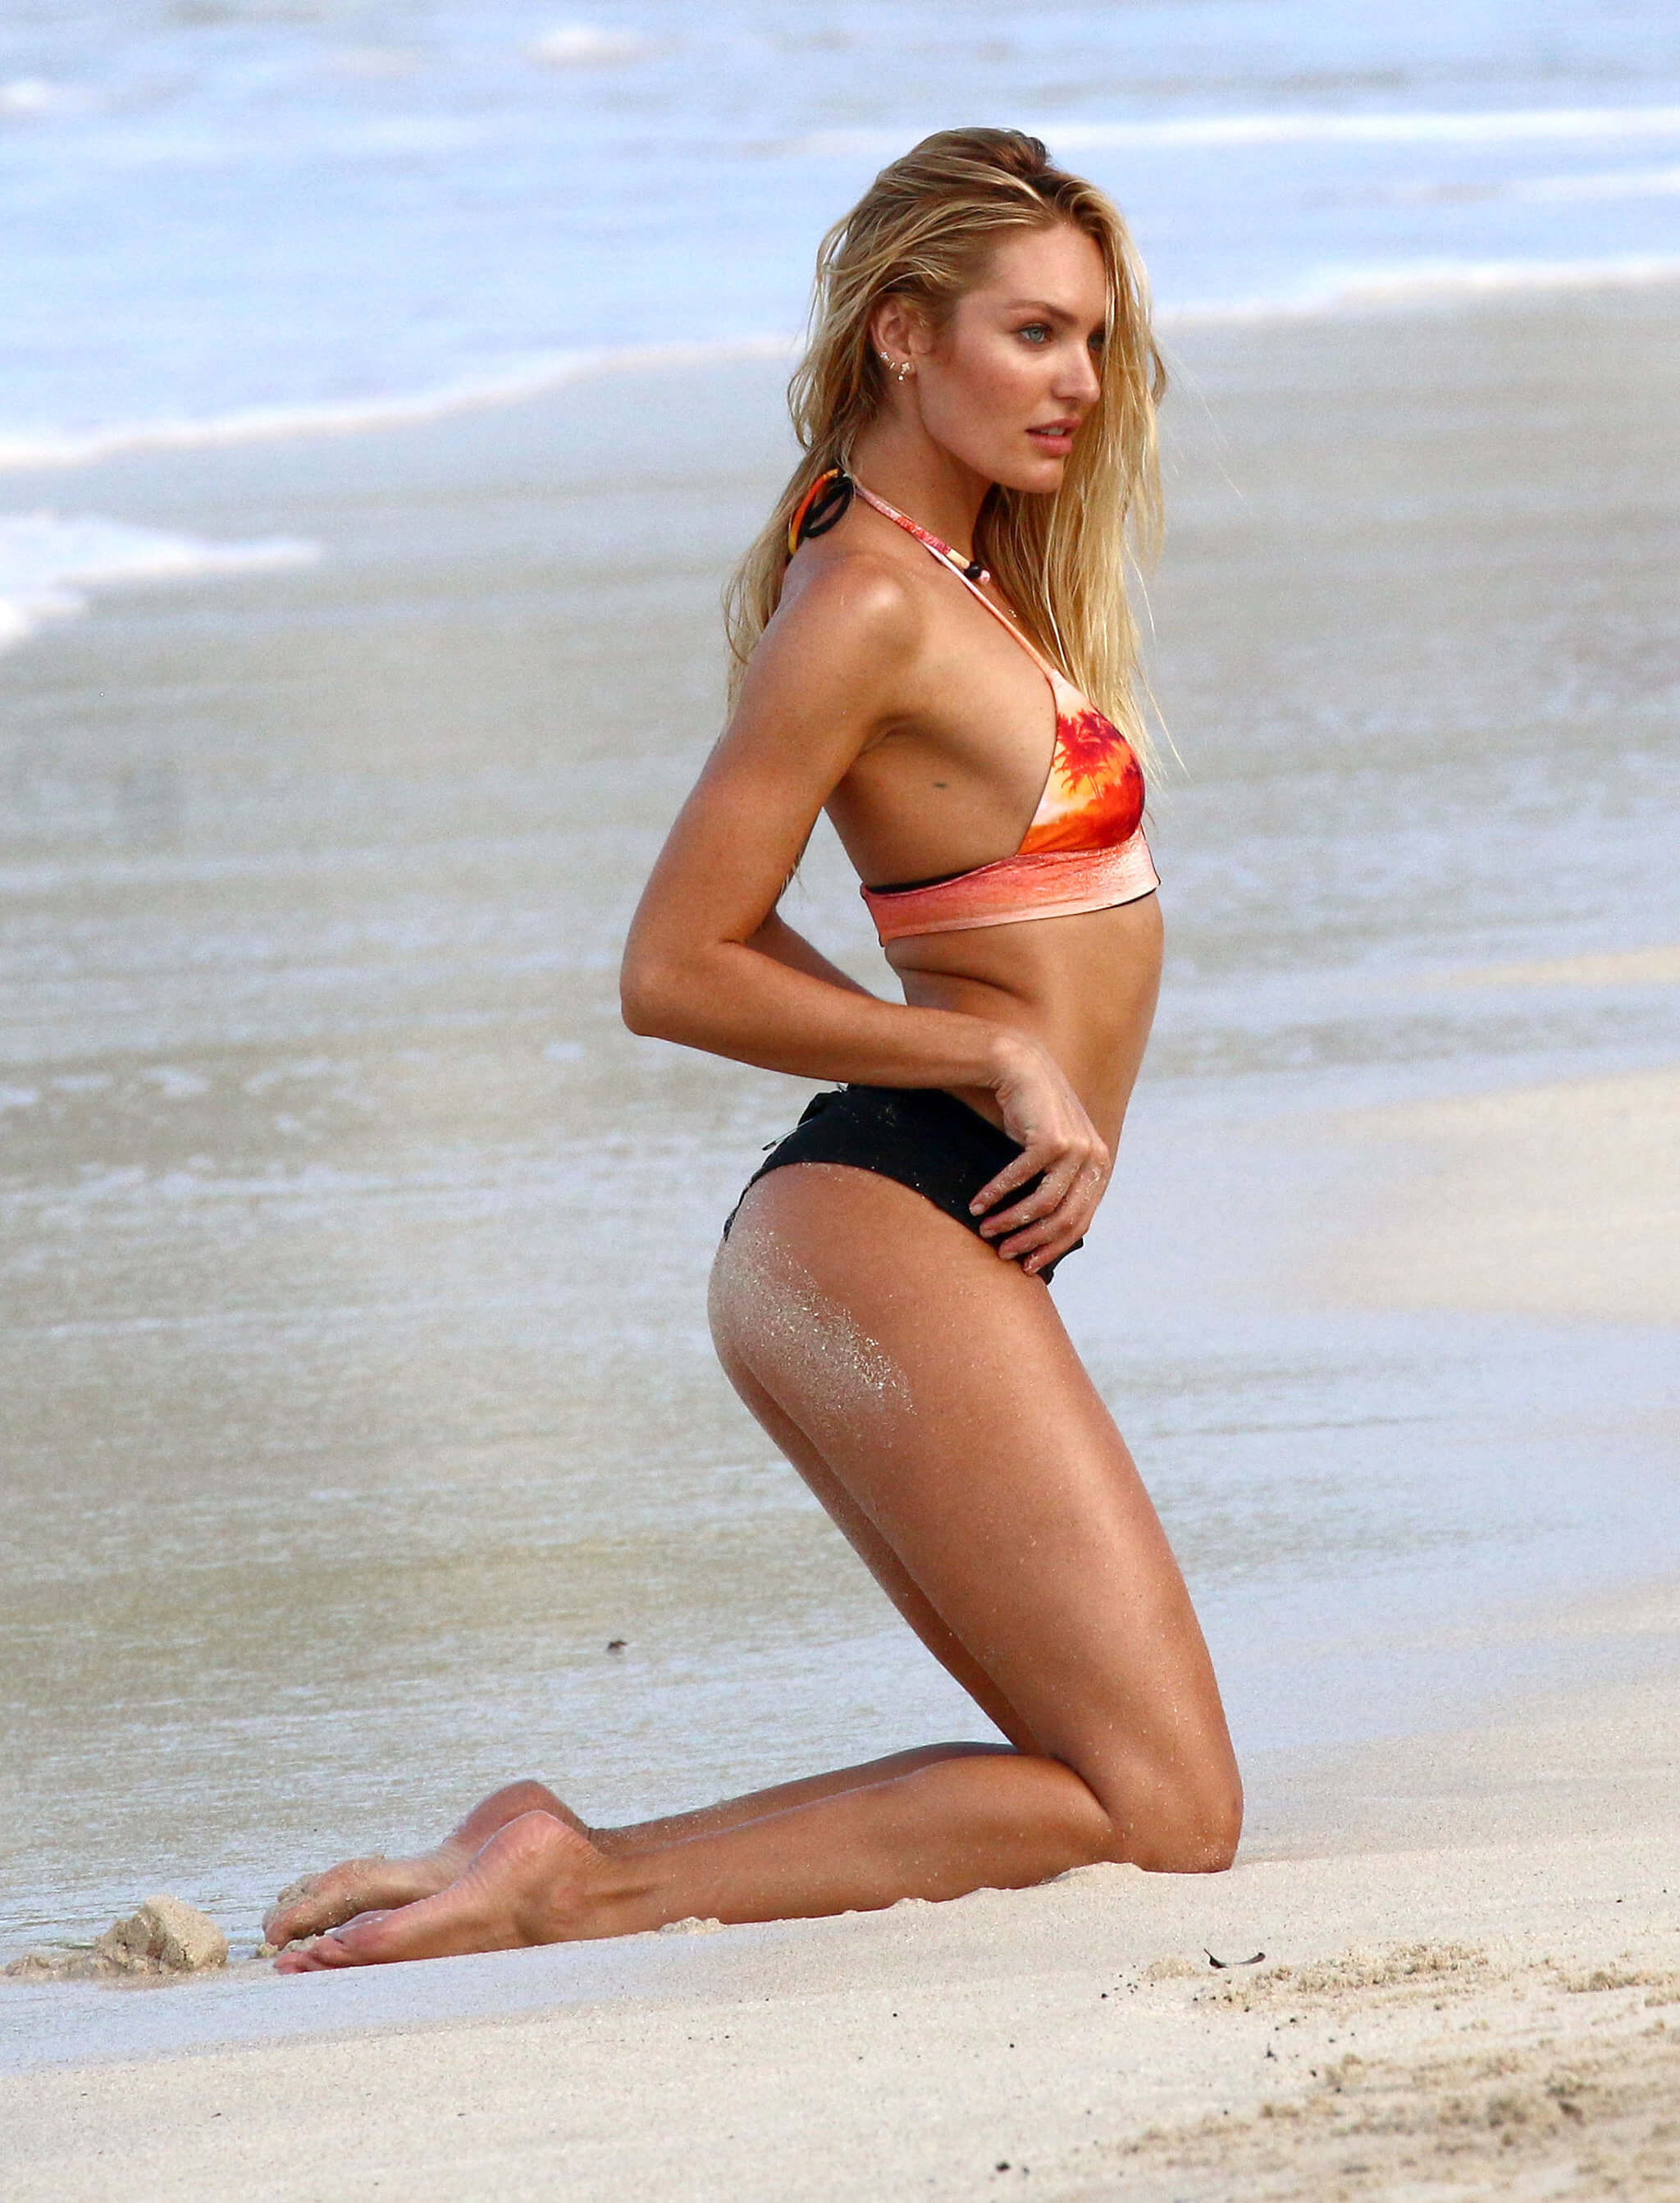 Candice Swanepoel hot side pic